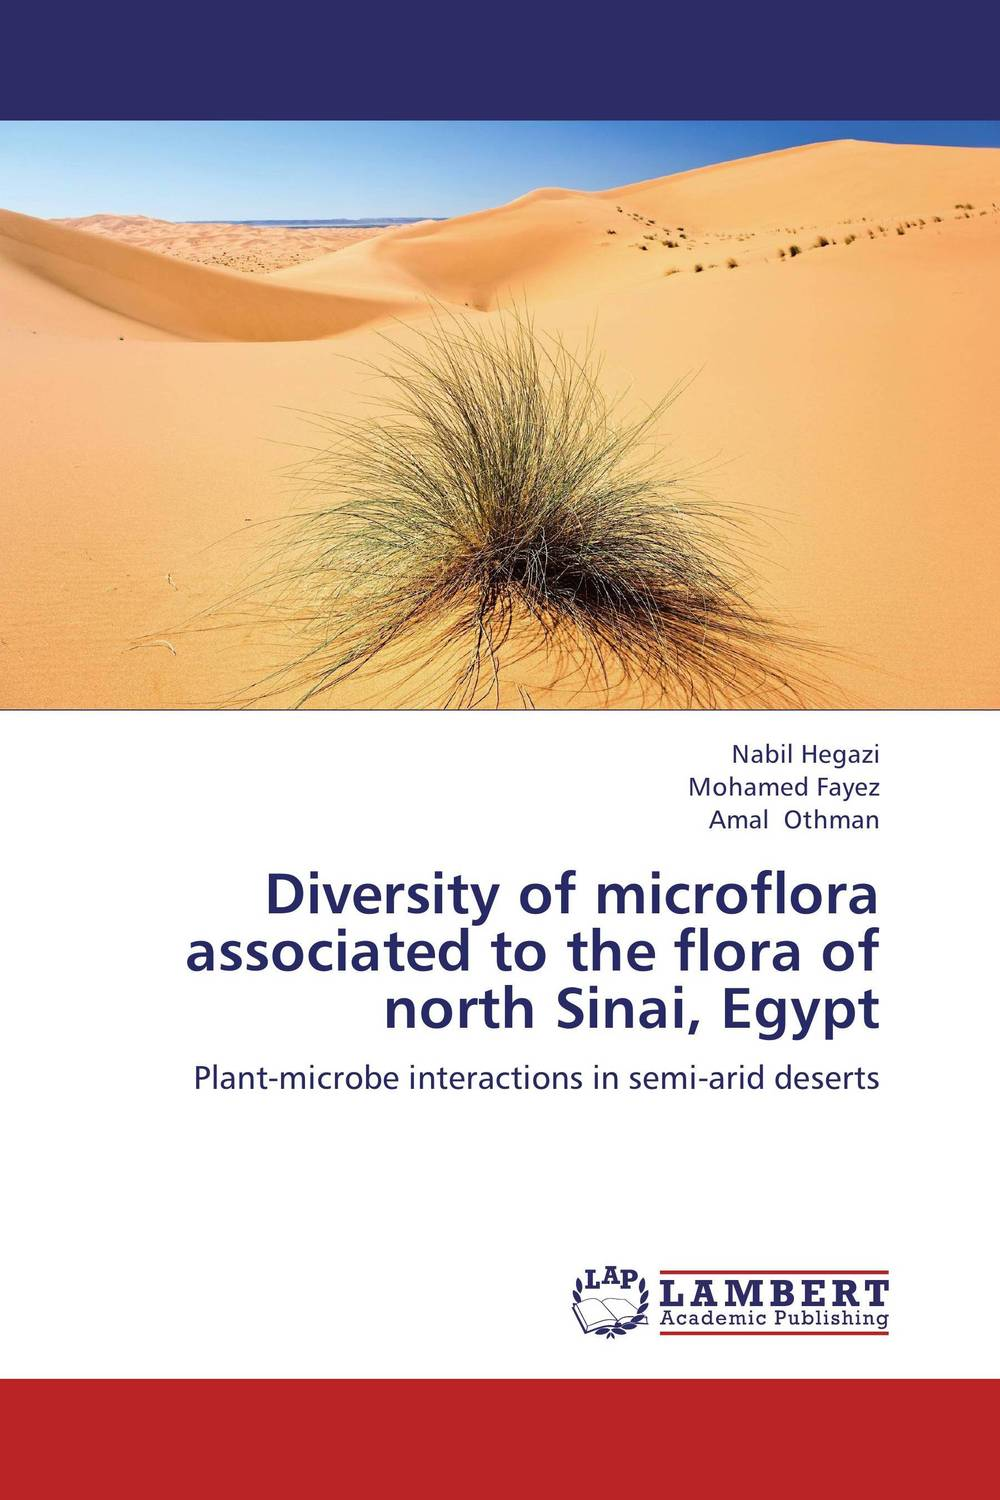 Diversity of microflora associated to the flora of north Sinai, Egypt the teeth with root canal students to practice root canal preparation and filling actually